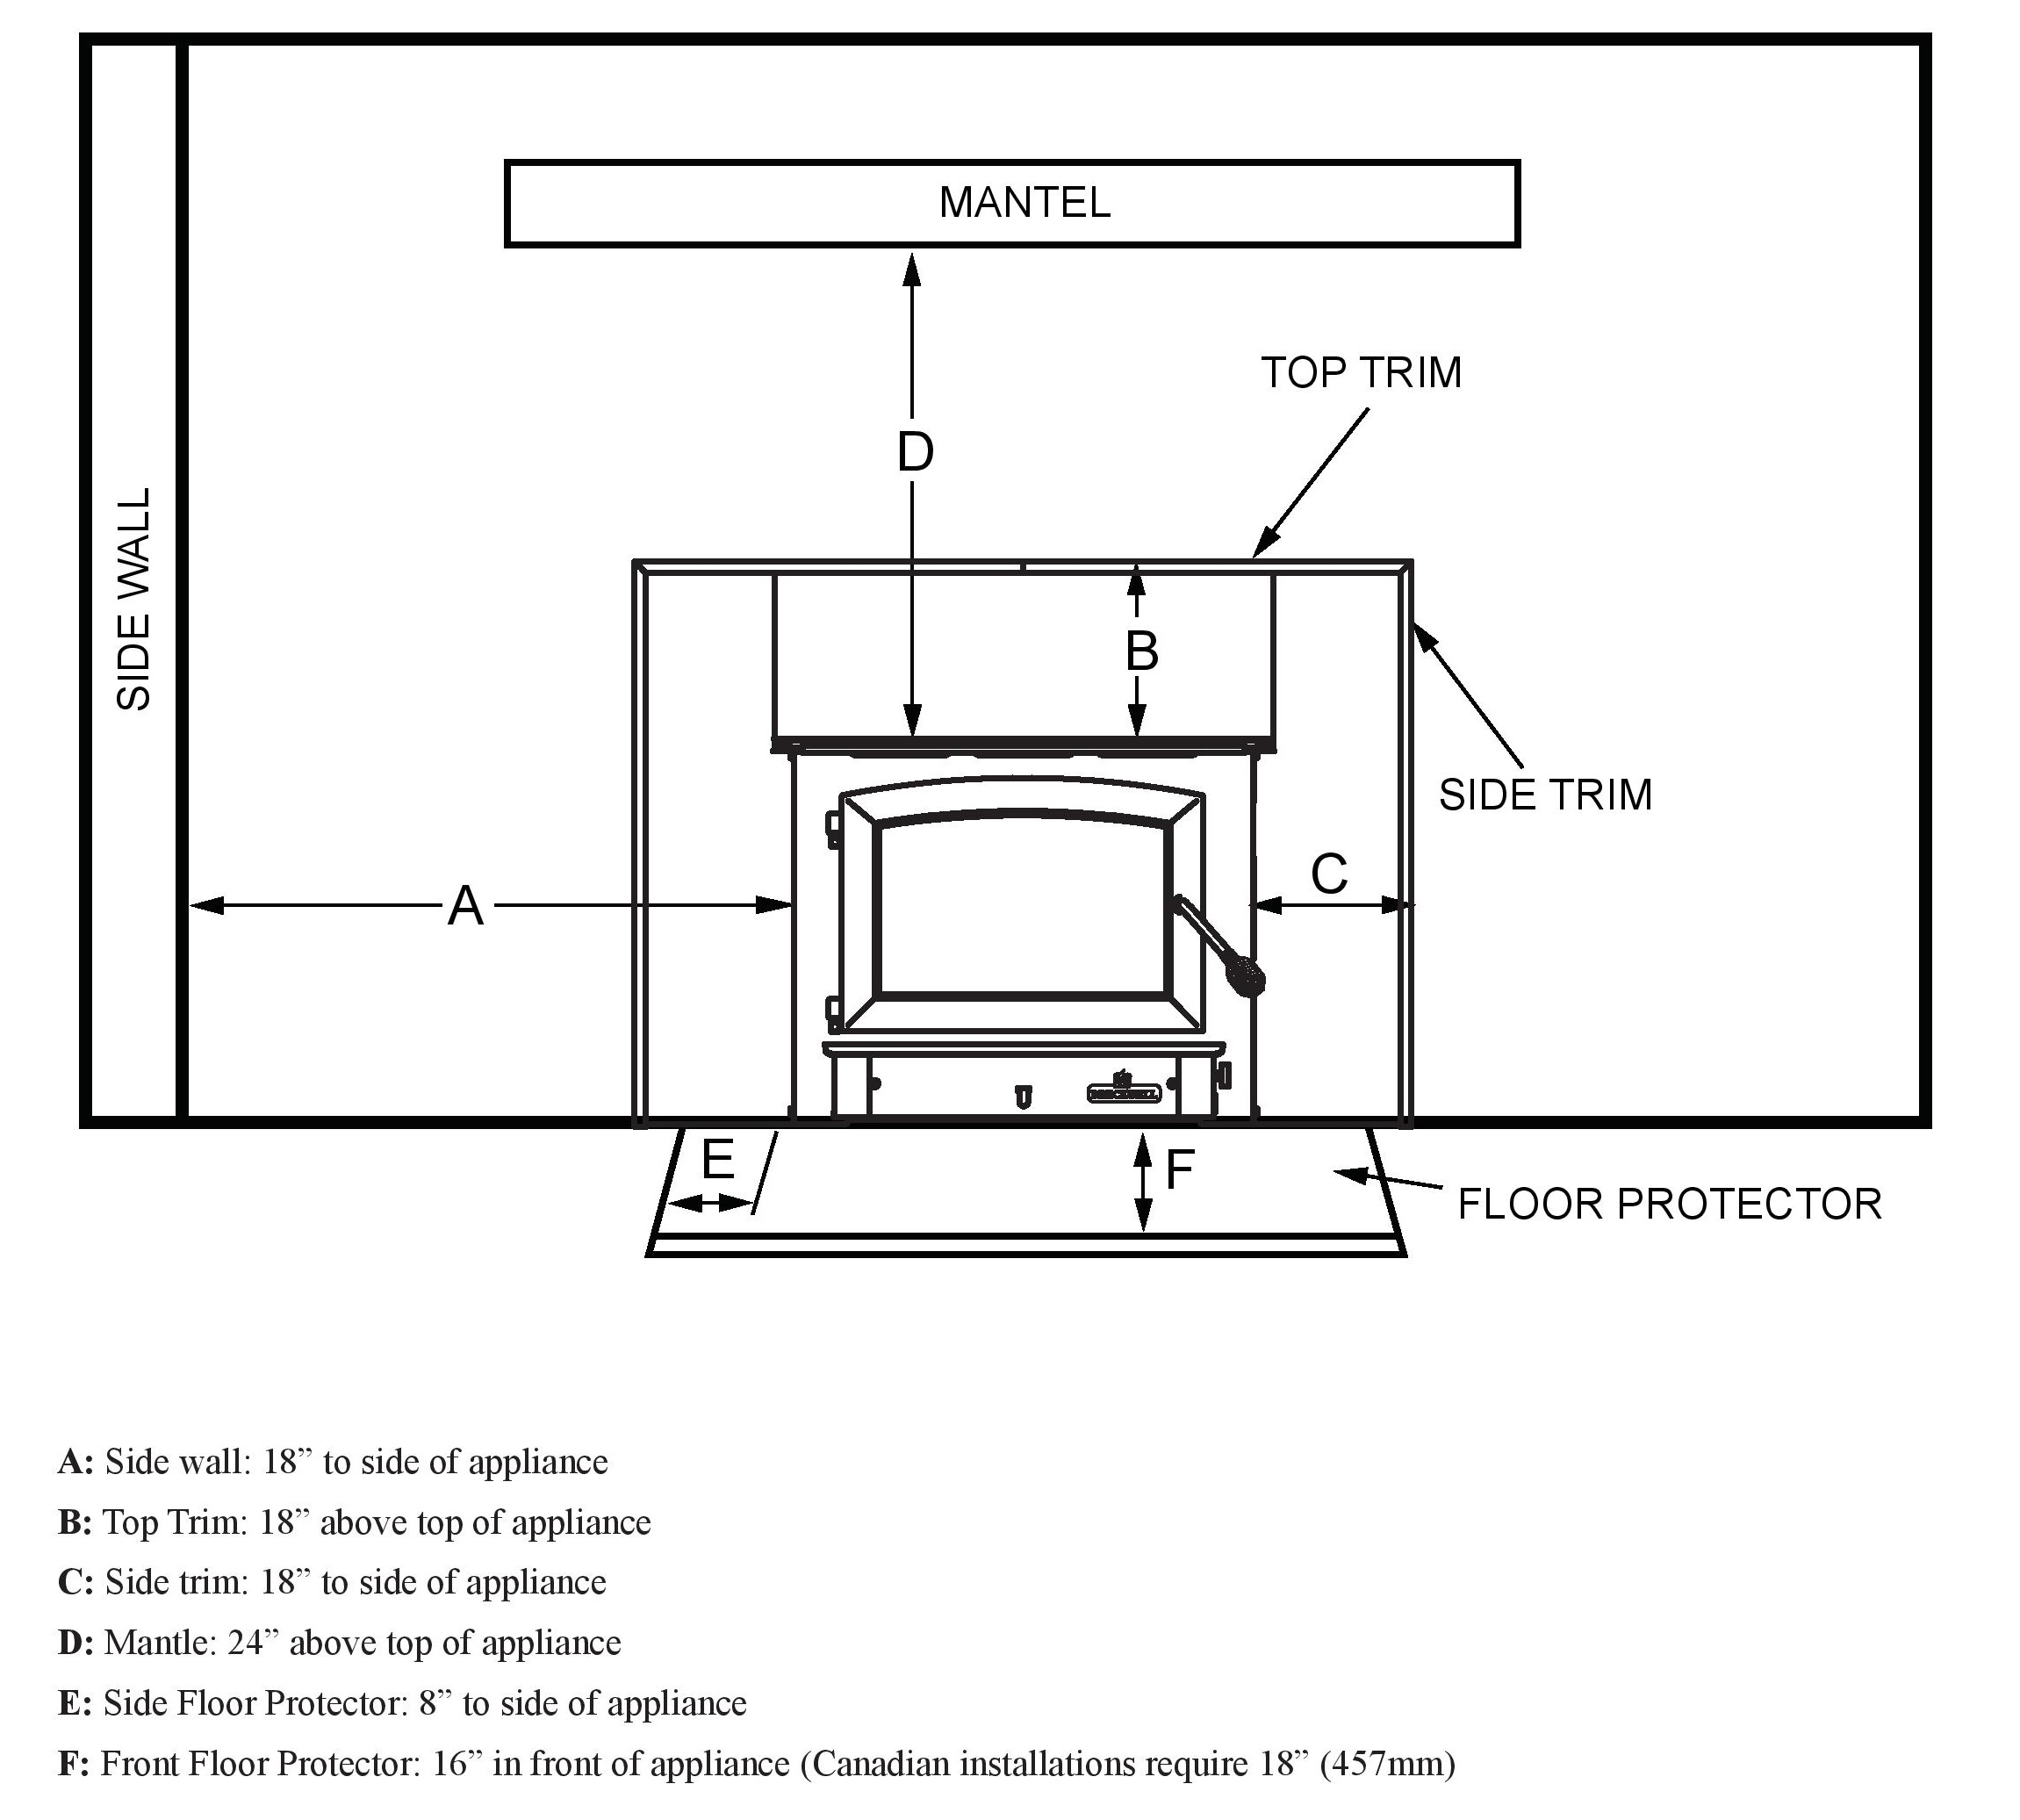 Dorable Superwinch Lt 2500 Wiring Diagram Photos - Electrical and ...